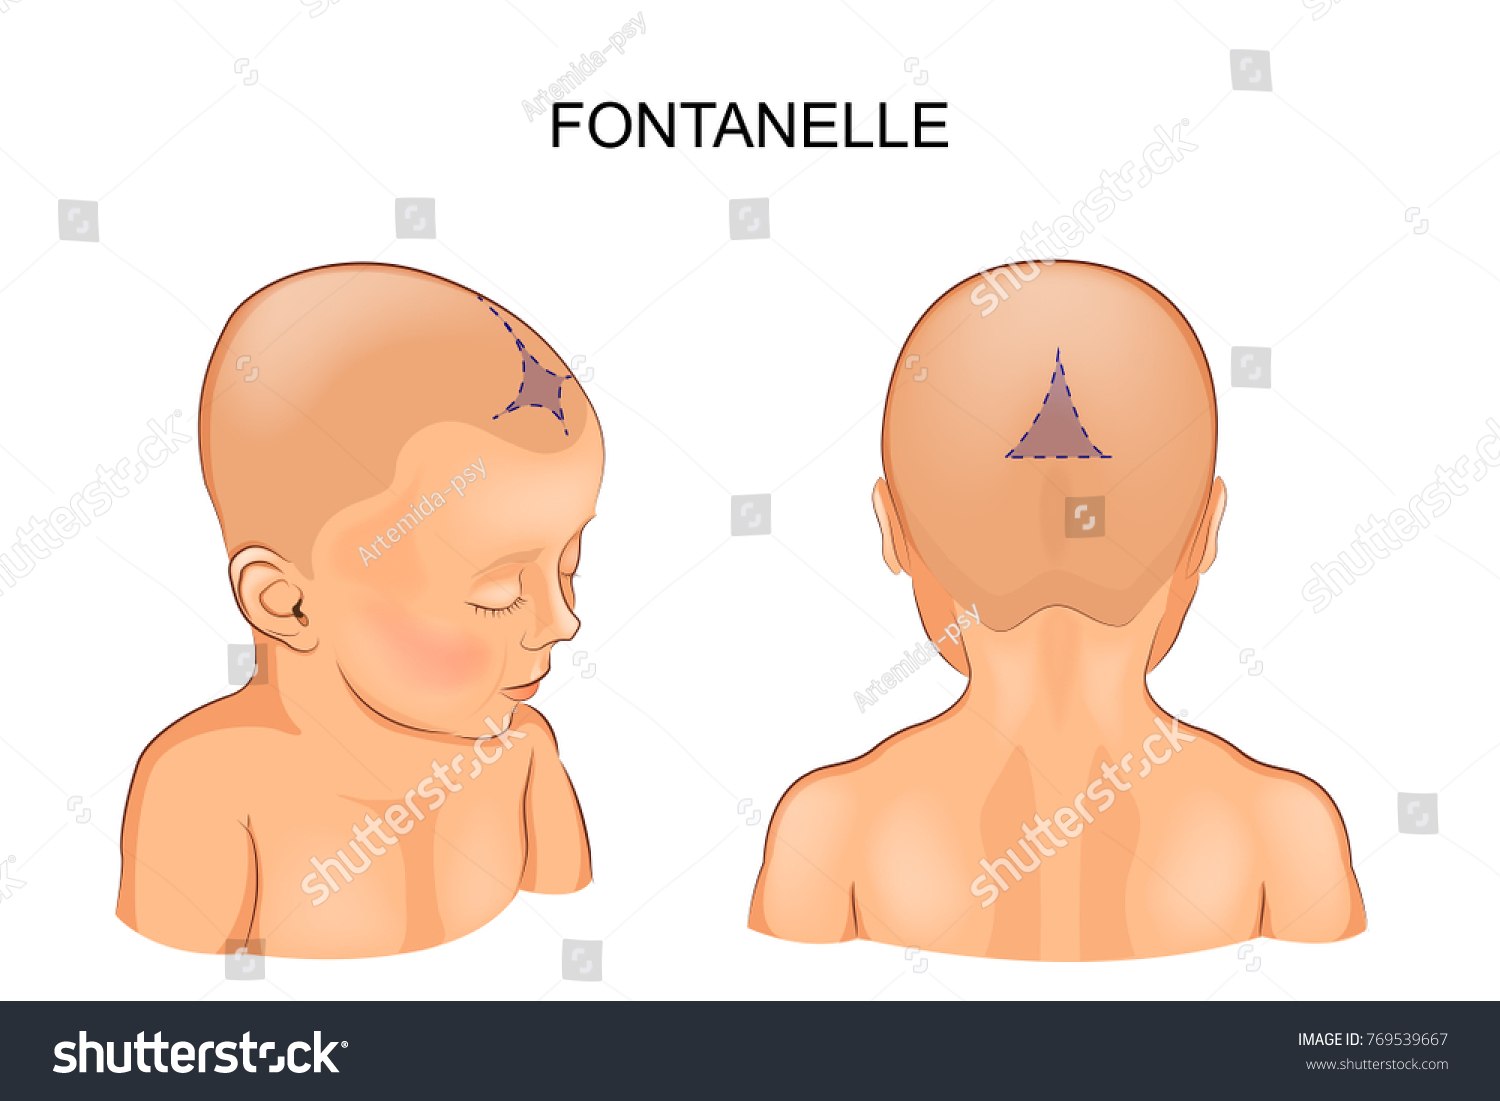 Vector Illustration Fontanelle Infant Stock Vector Royalty Free